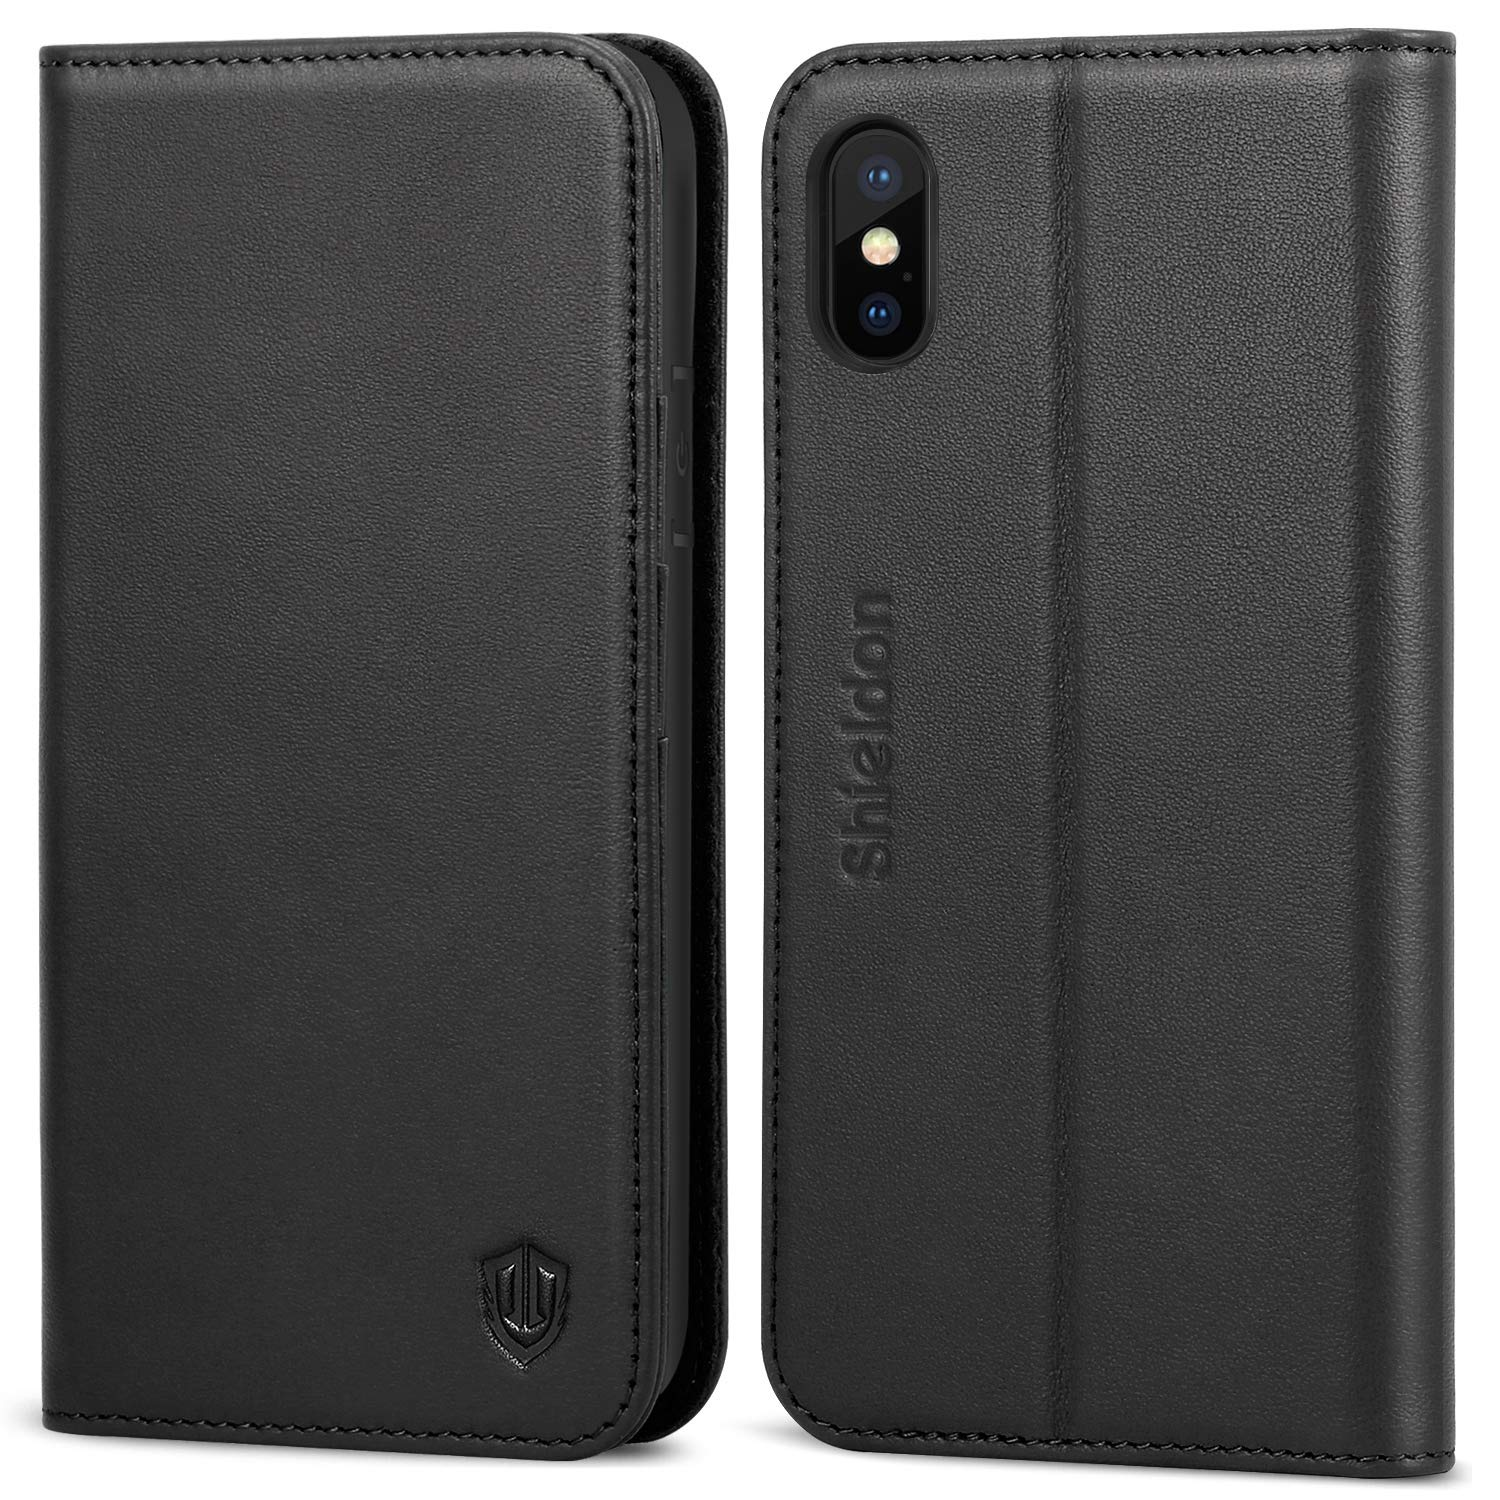 SHIELDON iPhone Xs Case, Genuine Leather iPhone Xs Wallet Folio Case with Auto Sleep Wake Function, Magnetic Closure, RFID Blocking Card Slots, Soft Back Cover Compatible with iPhone Xs (2018) - Black by SHIELDON